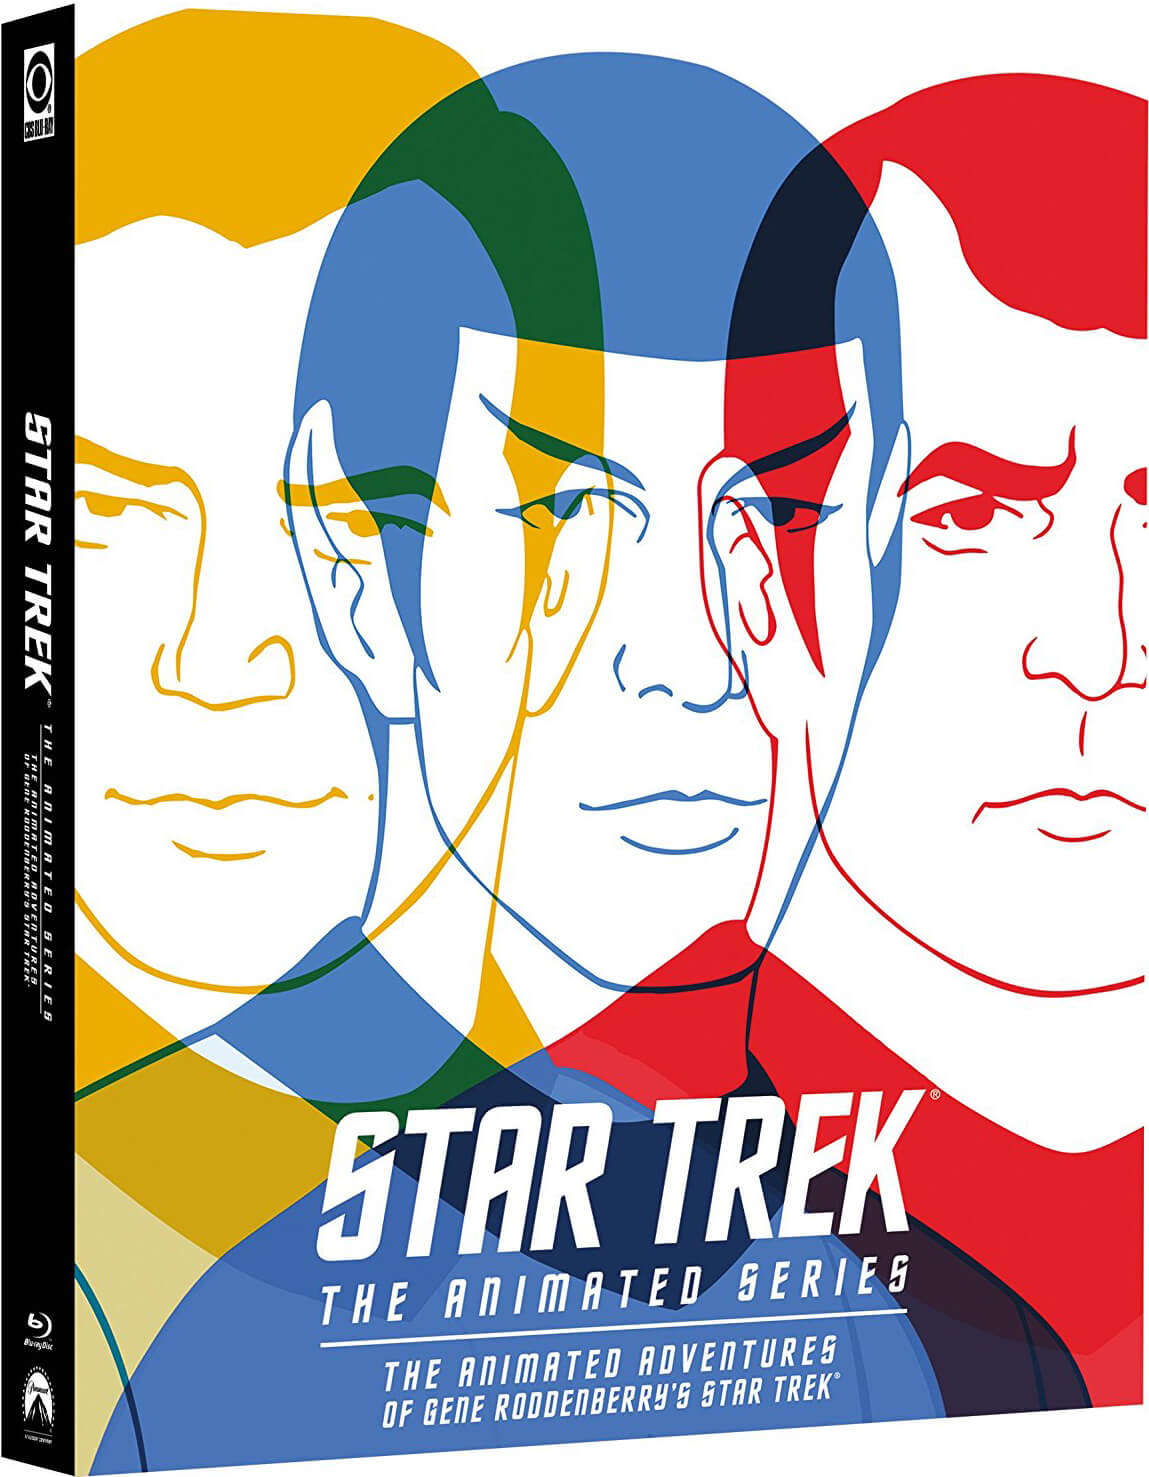 Star Trek: The Animated Series - The Animated Adventures Of Gene Roddenberry